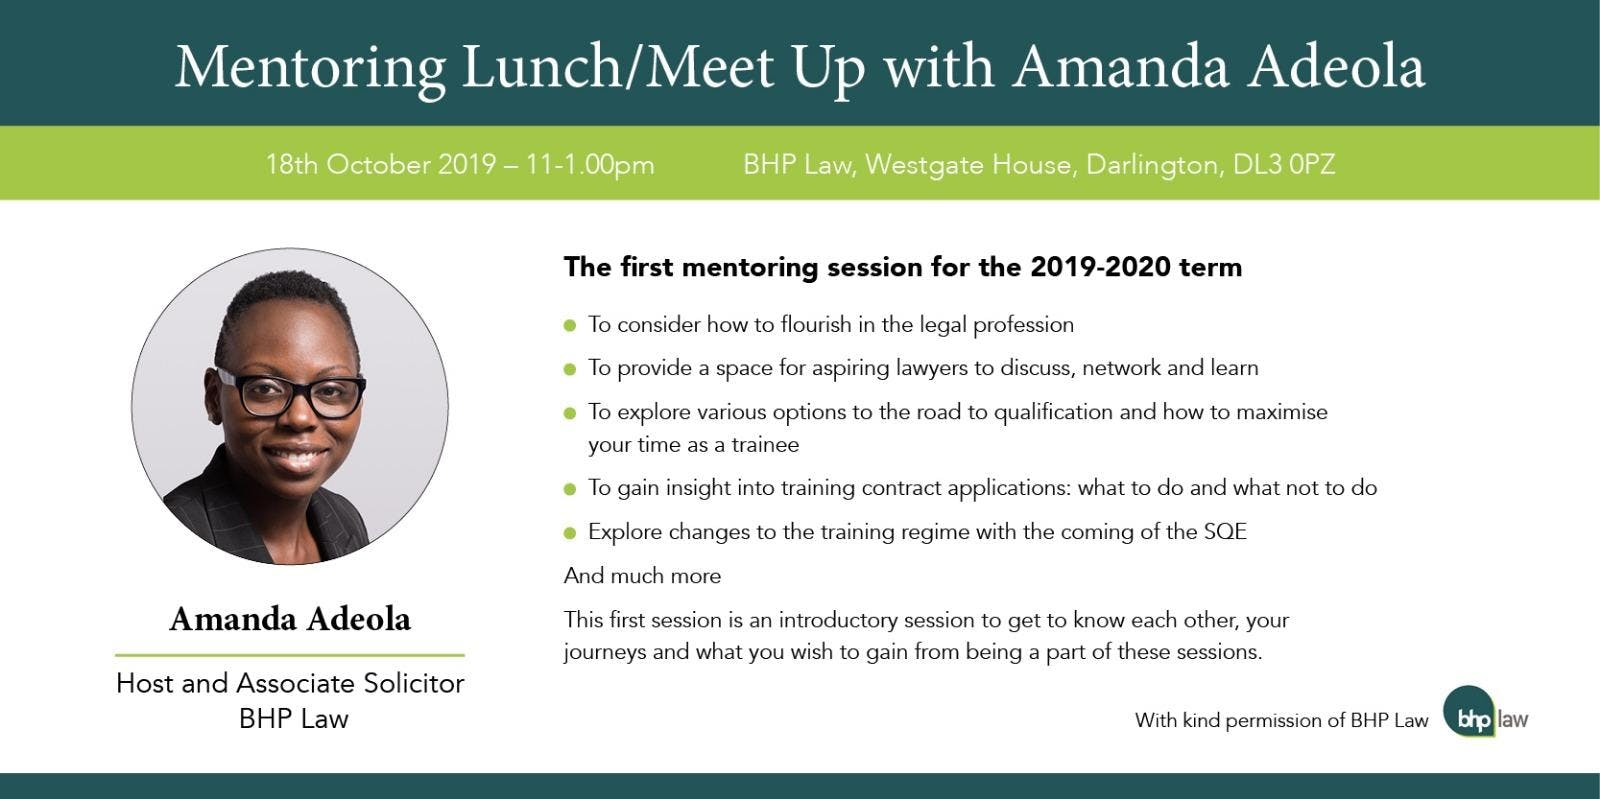 Mentoring Lunch/Meet Up with Amanda Adeola